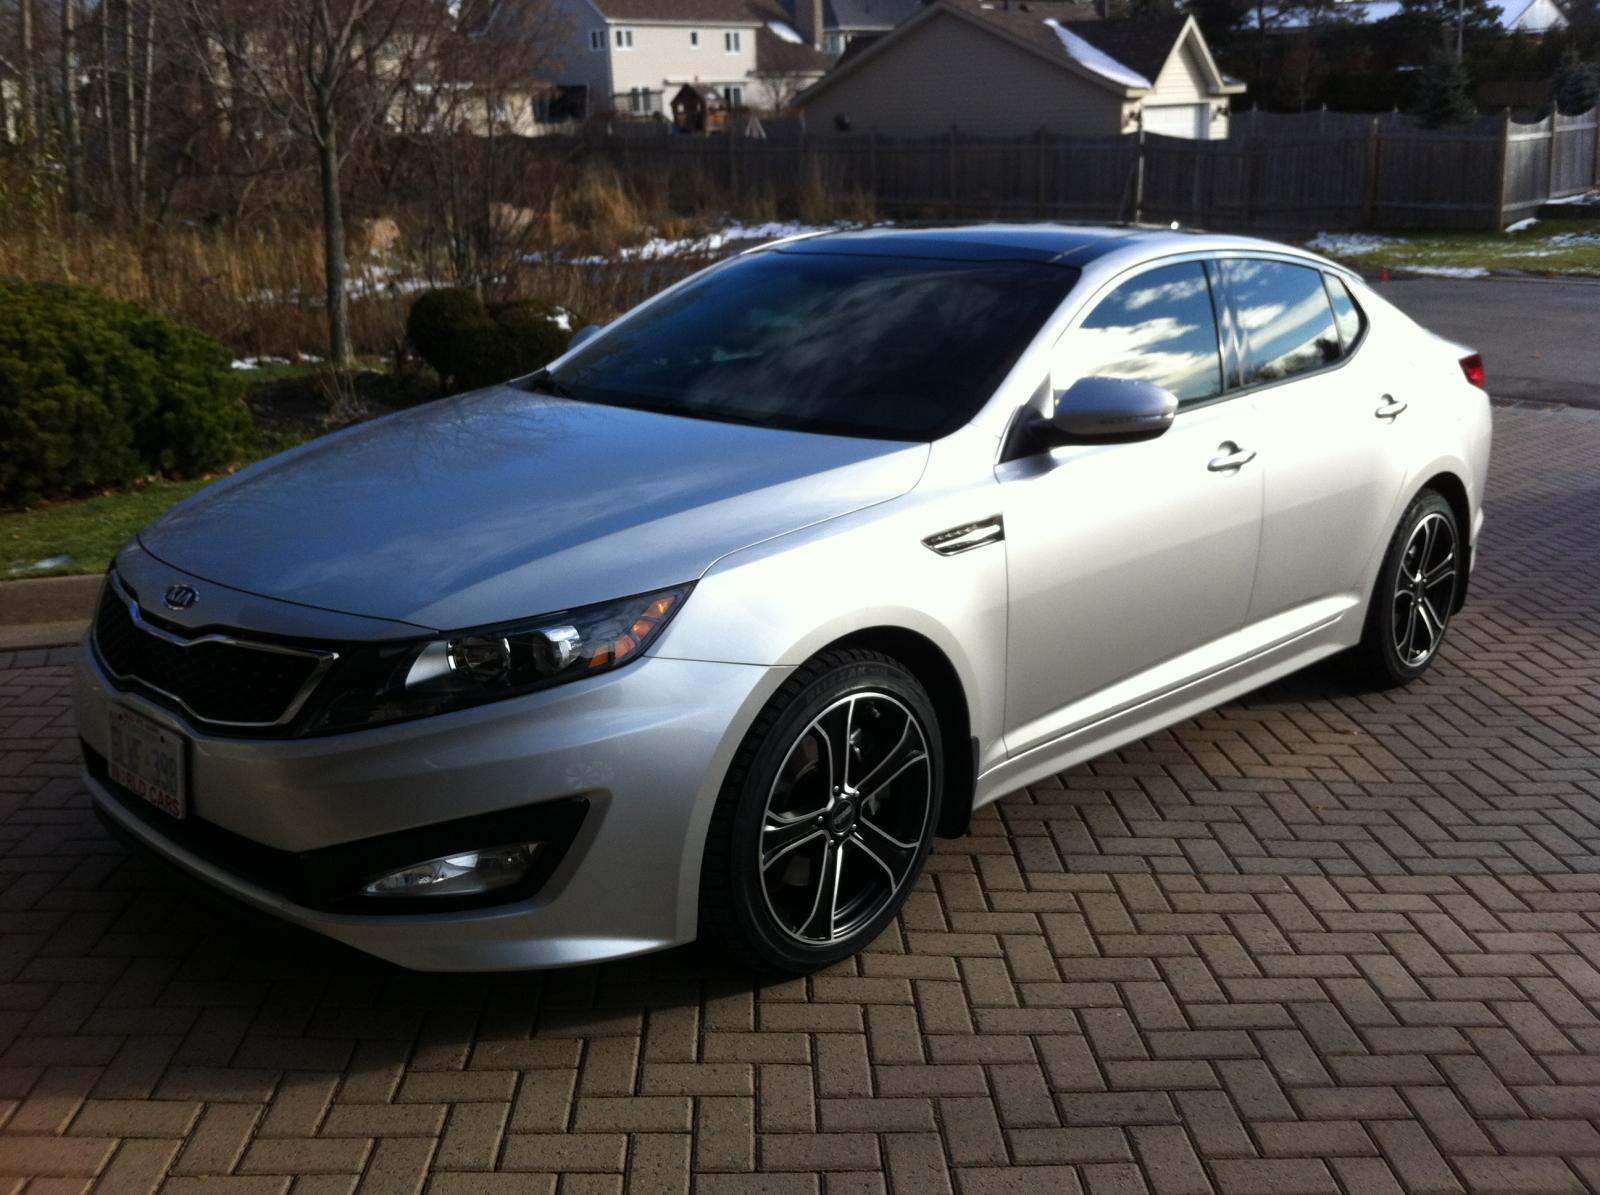 Kia Optima Custom Wheels Moda Md 14 18x Et Tire Size